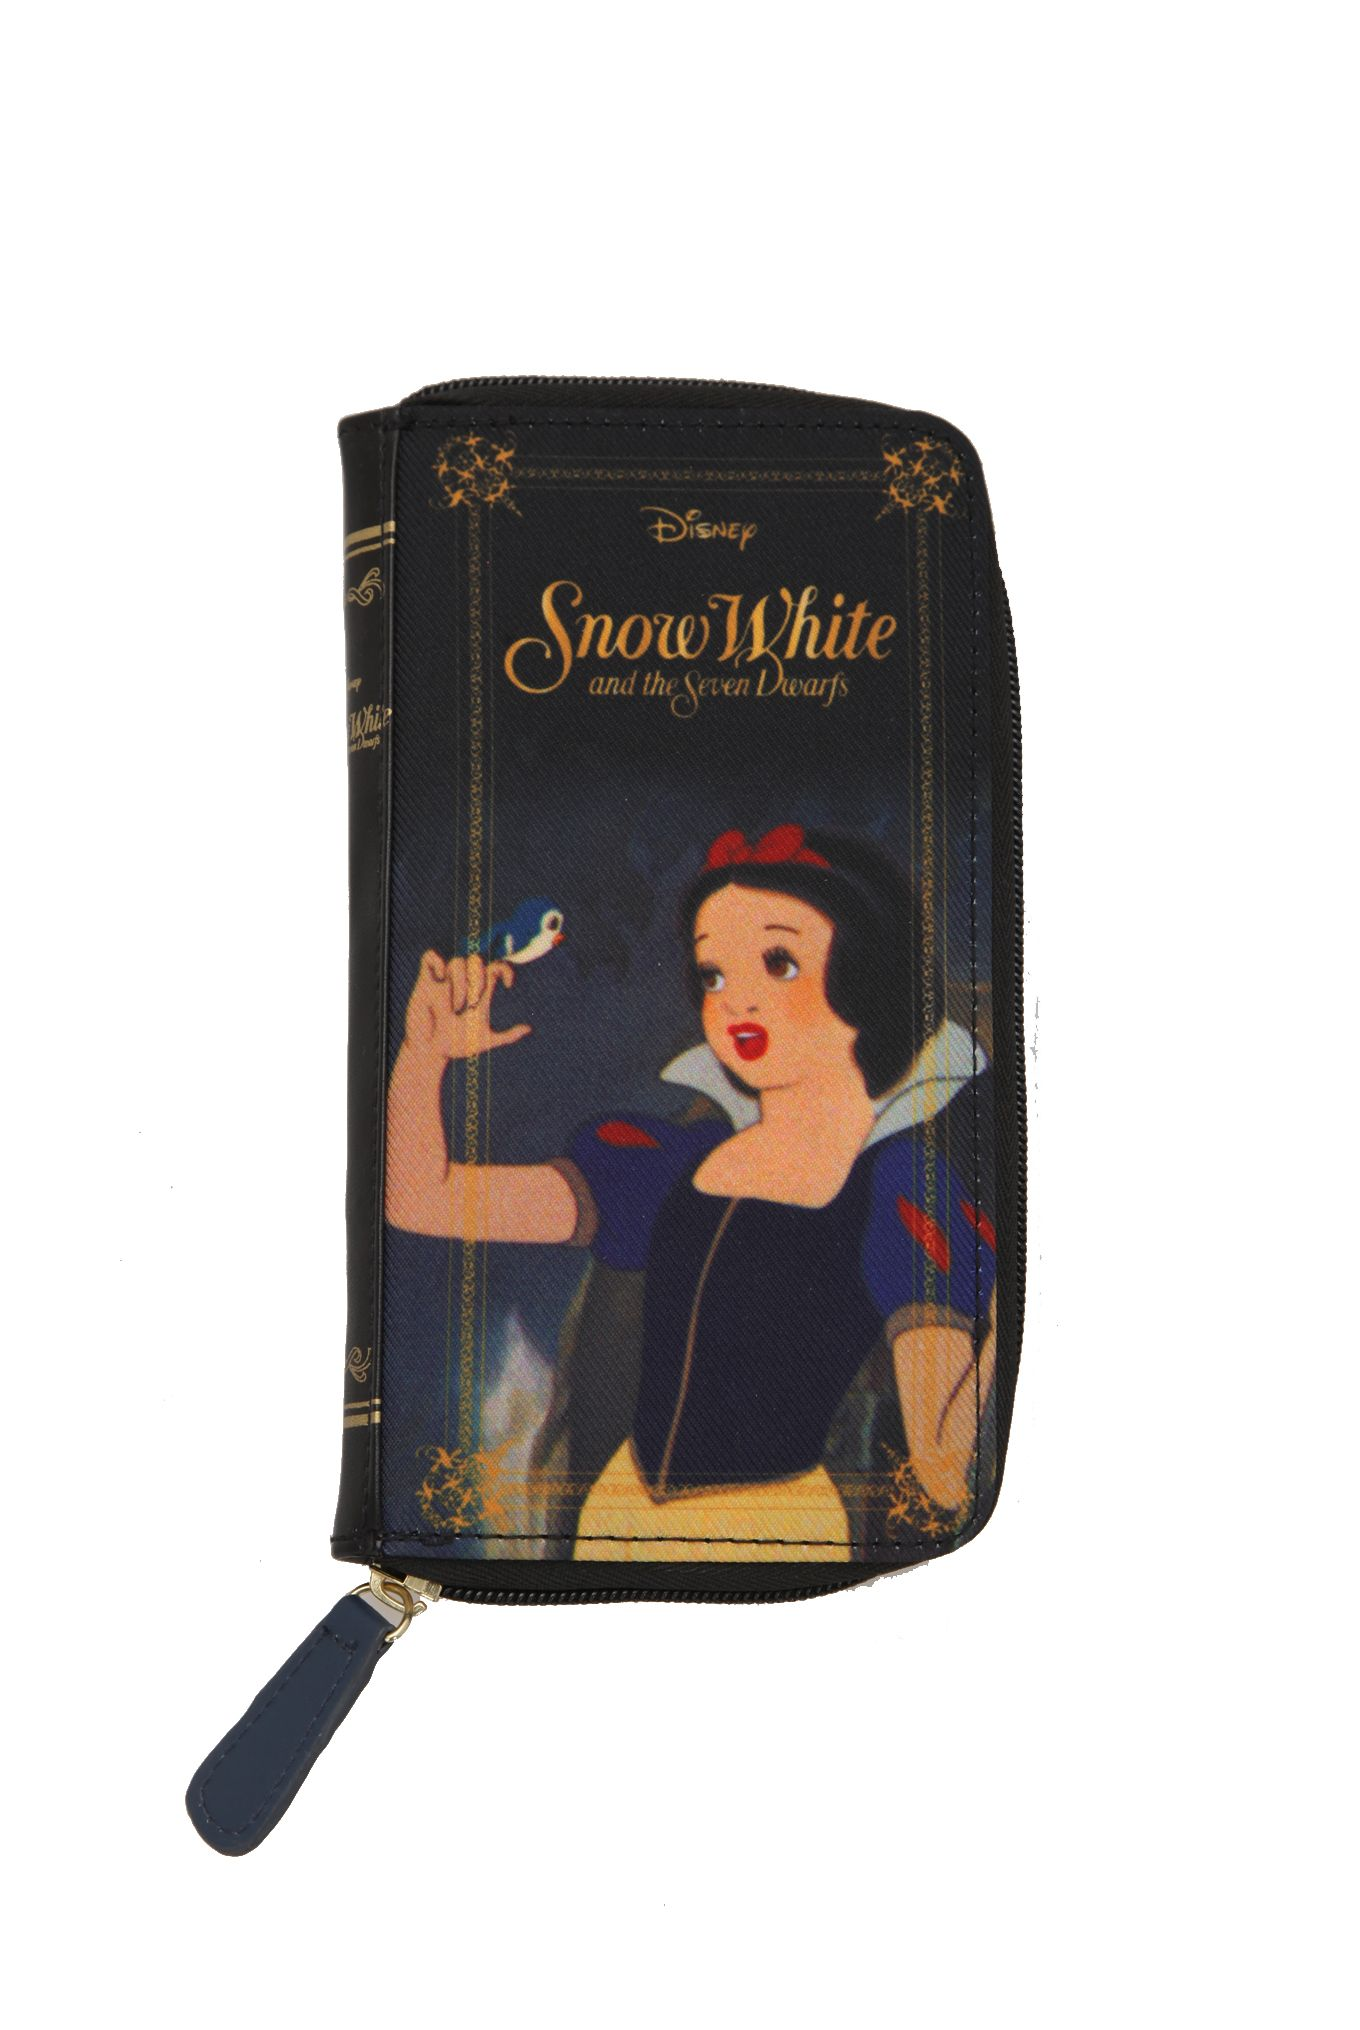 Vintage Snow White Small Zipper Clutch or Purse